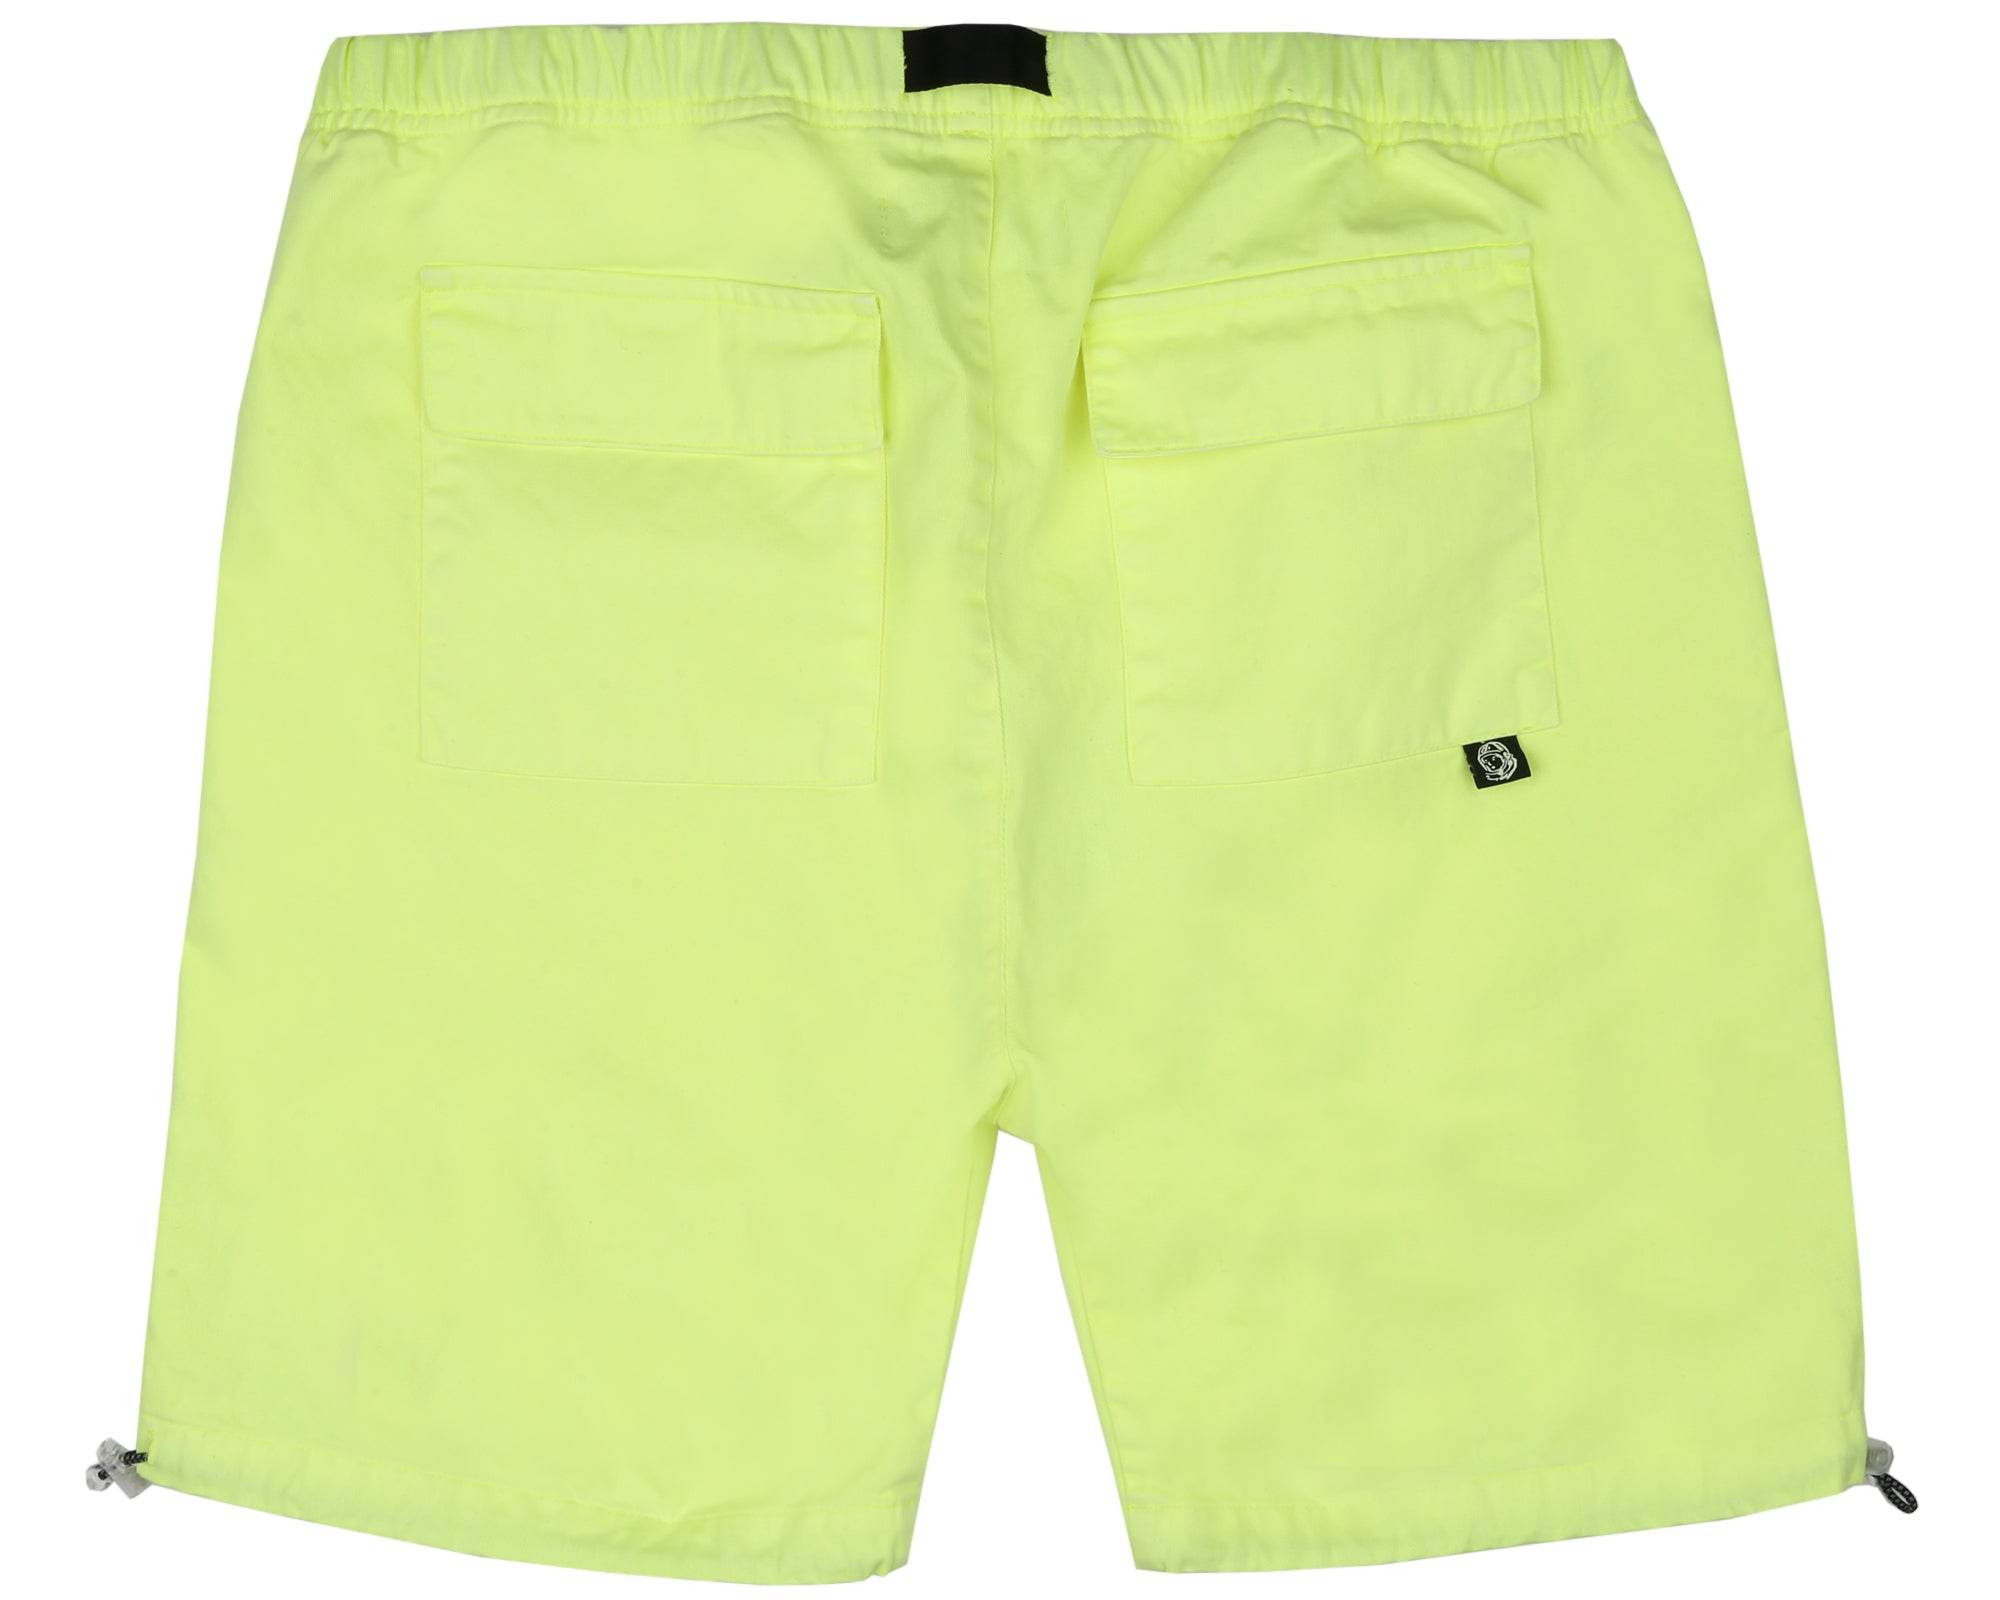 OVERDYED COTTON SHORTS - YELLOW